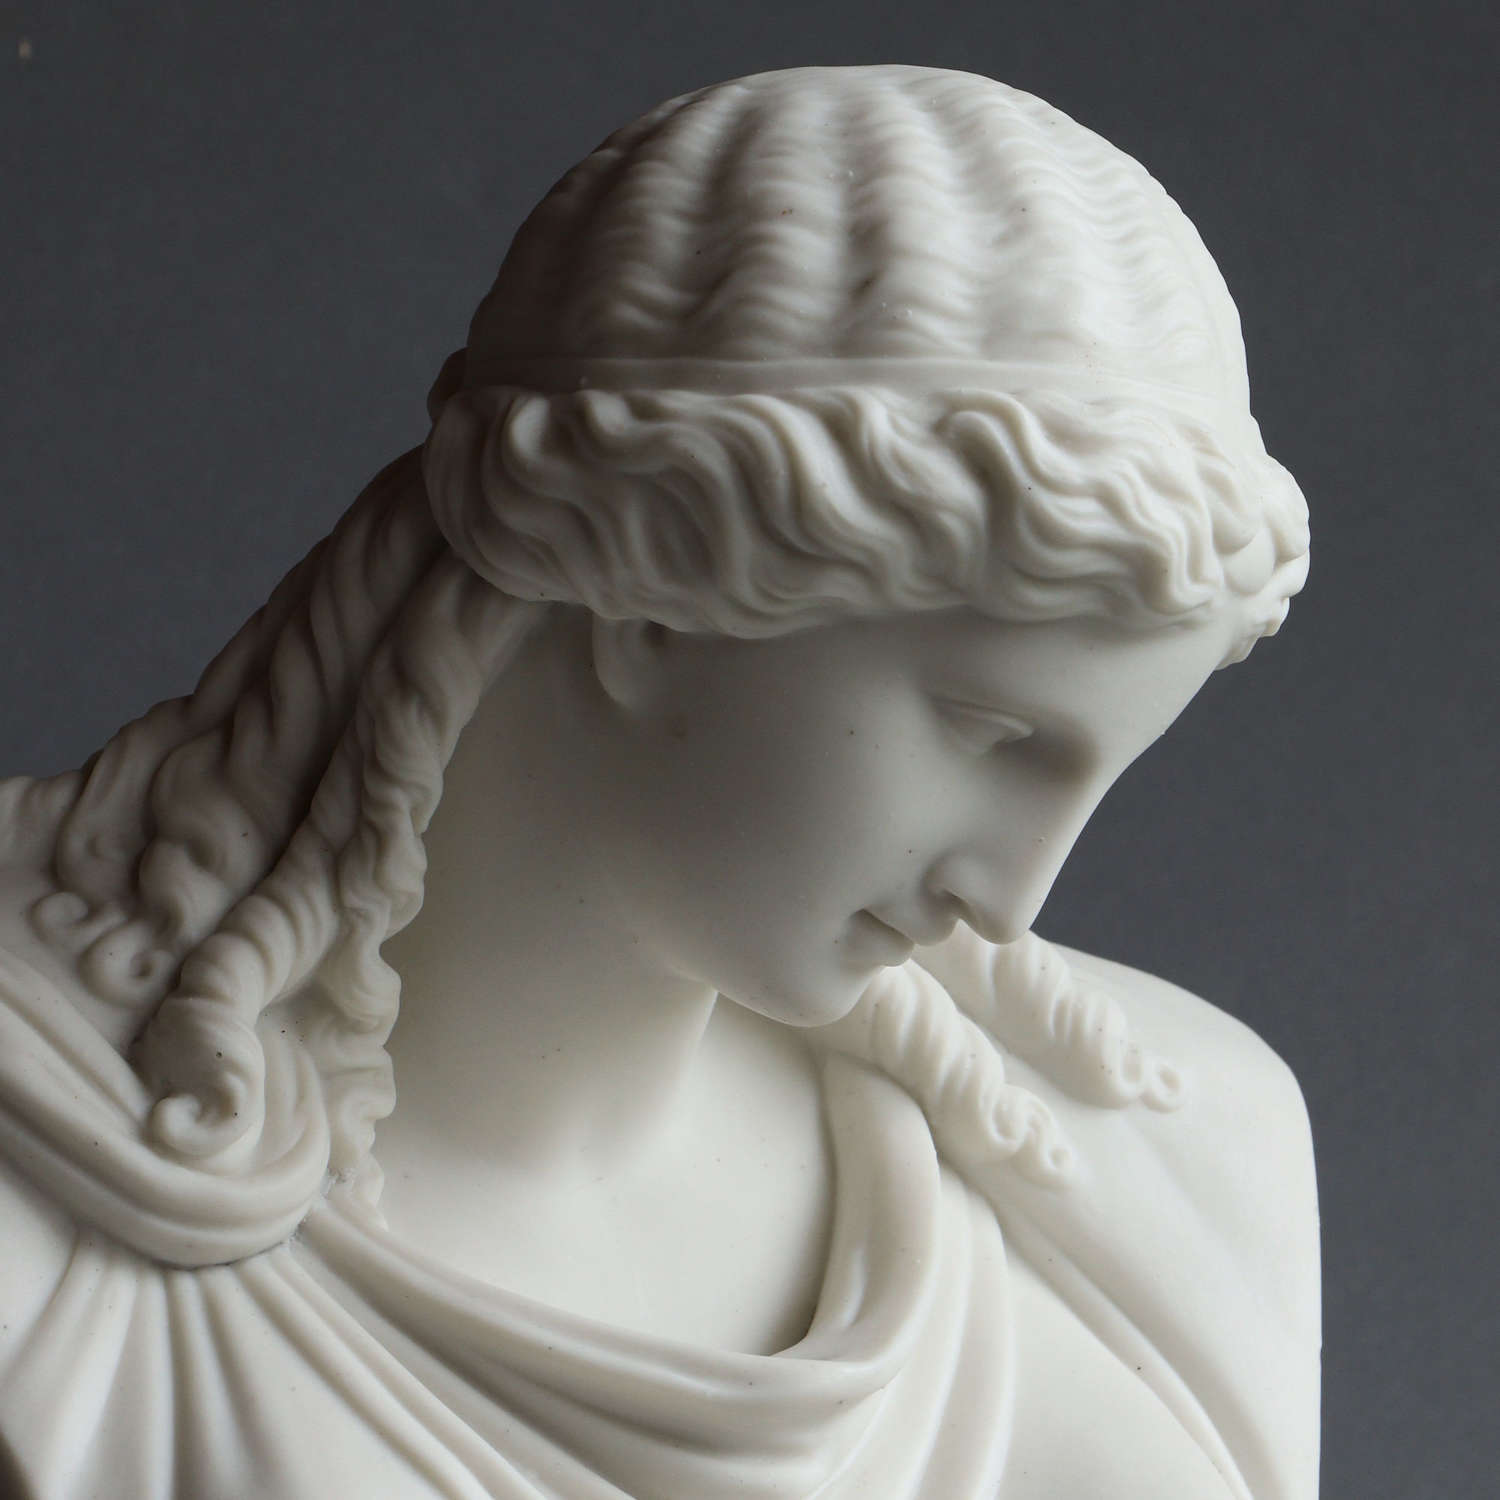 A Parian bust of a classical woman